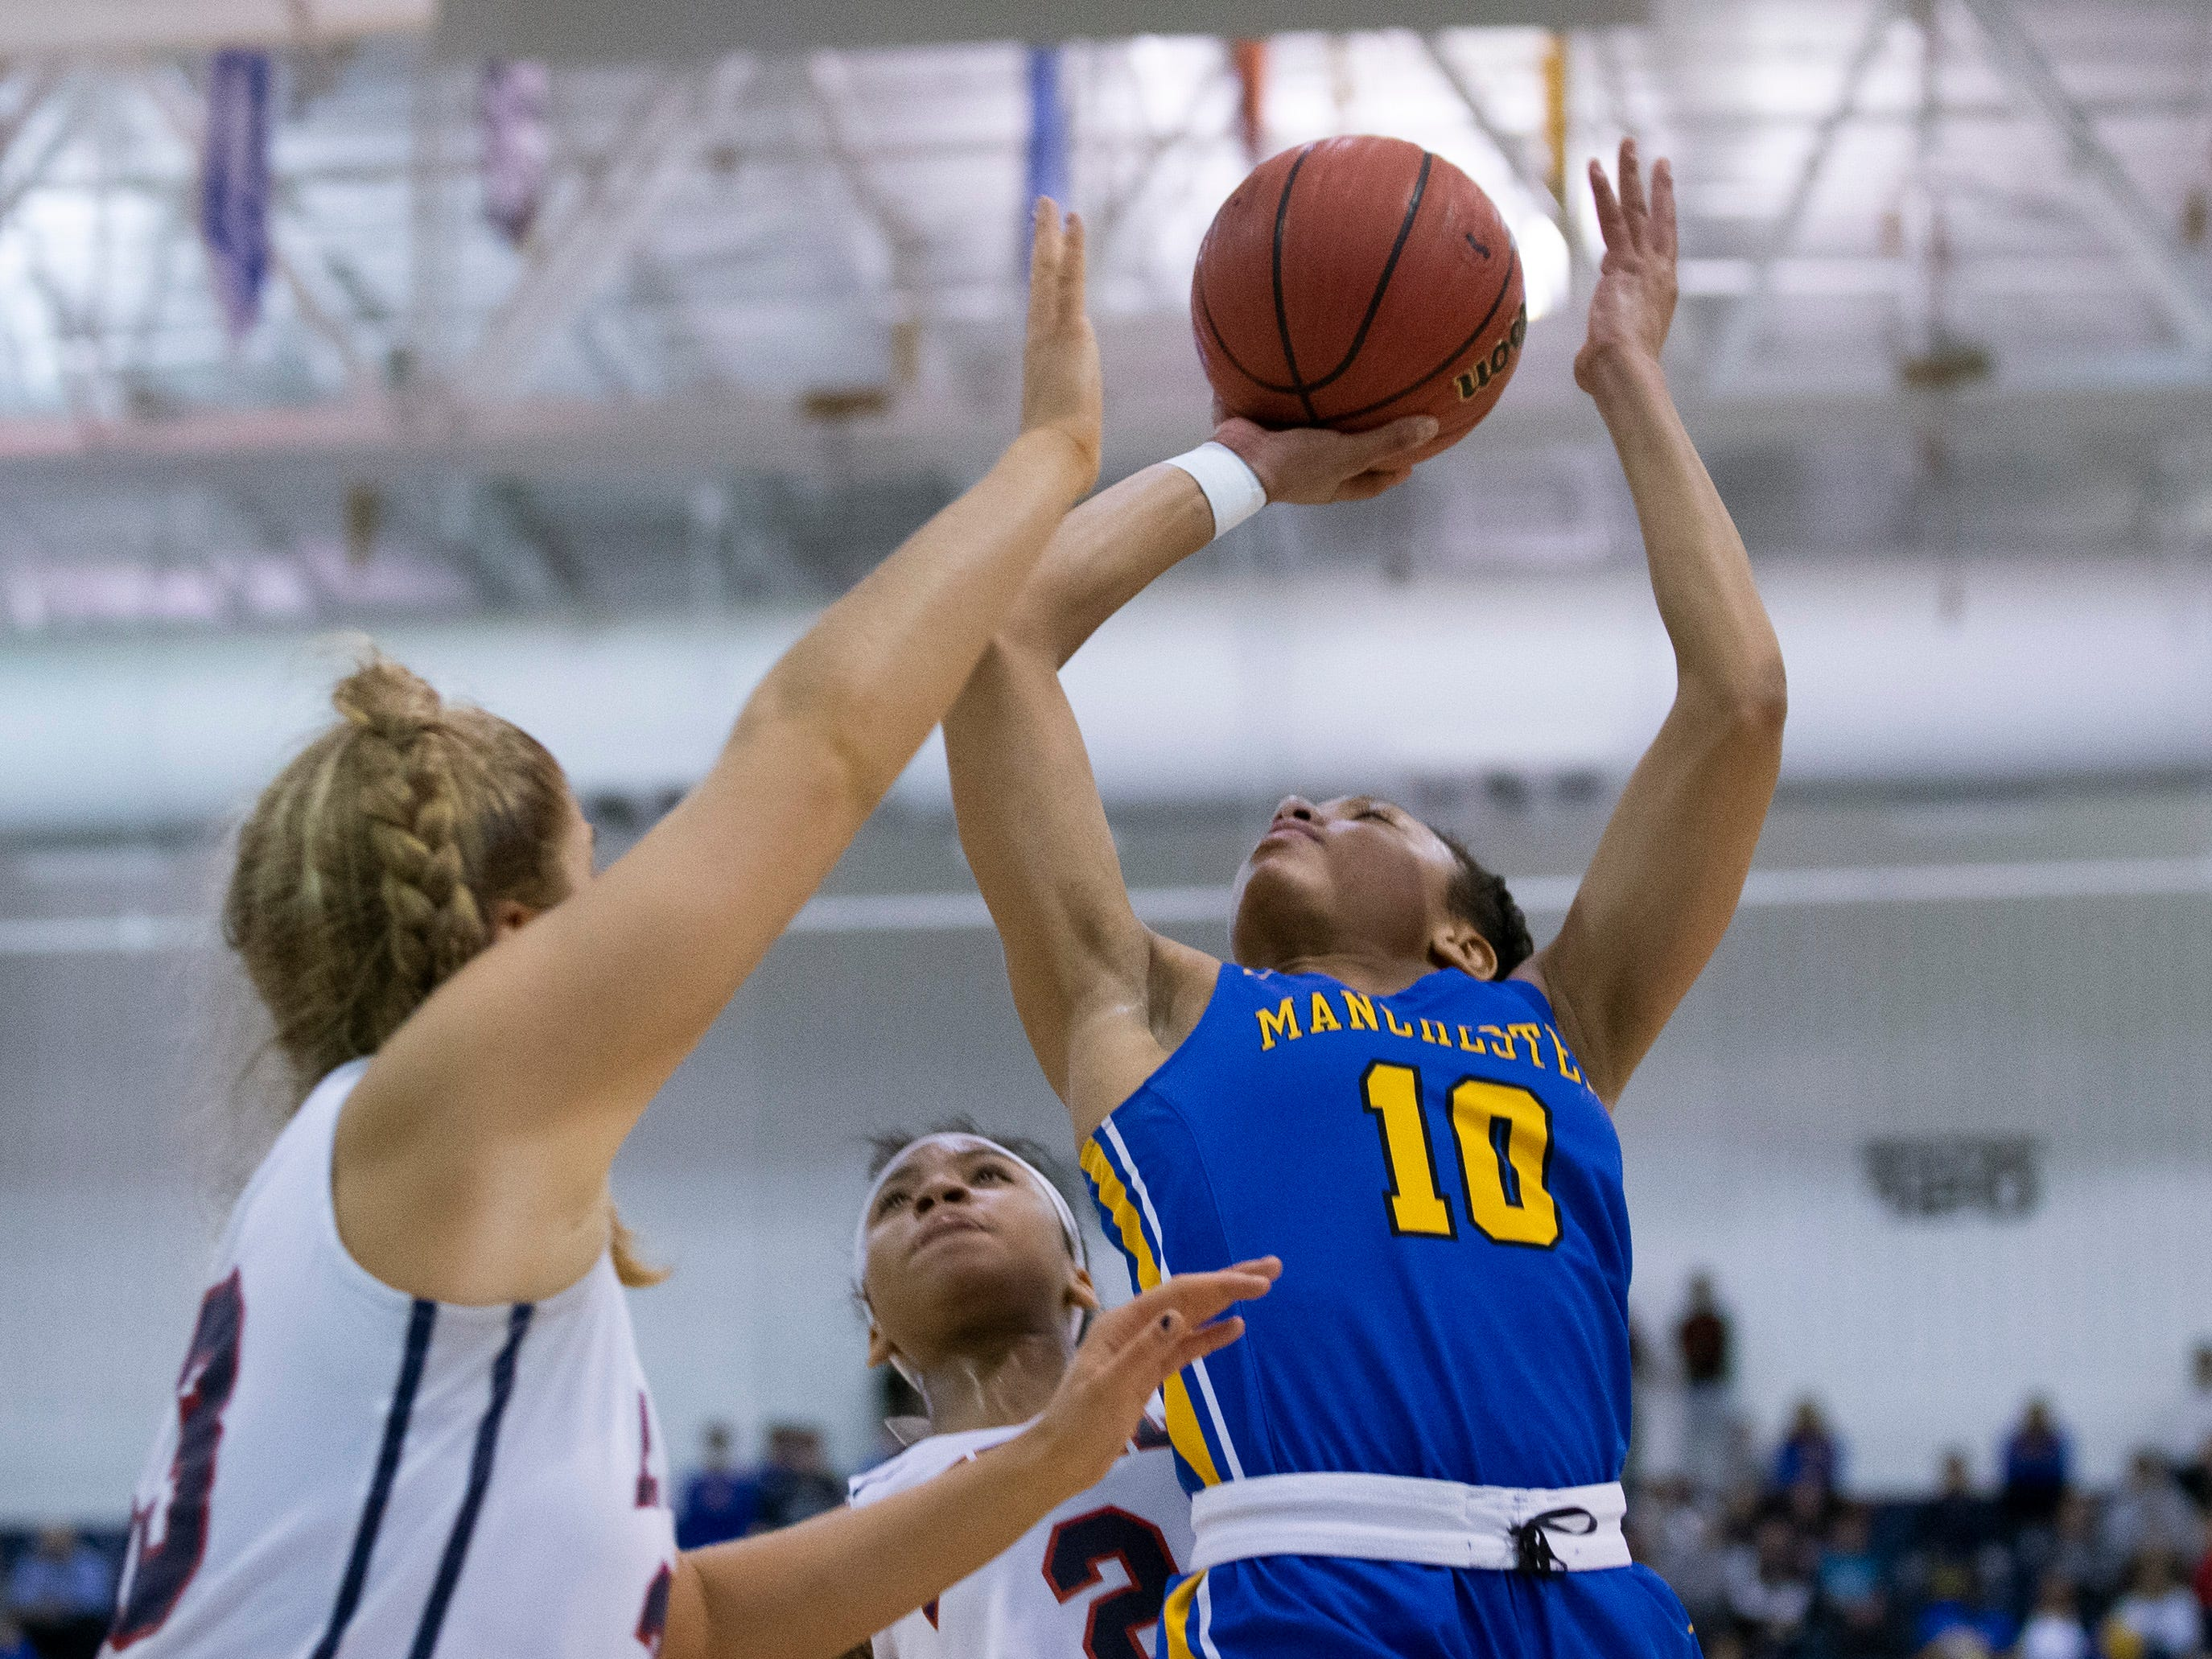 Manchester's Kemari Reynolds goes up with a shot. Manchester Girls Basketball vs Saddle River Day in NJSIAA Tournament of Champions Semifinal in Toms River on March 14, 2019.